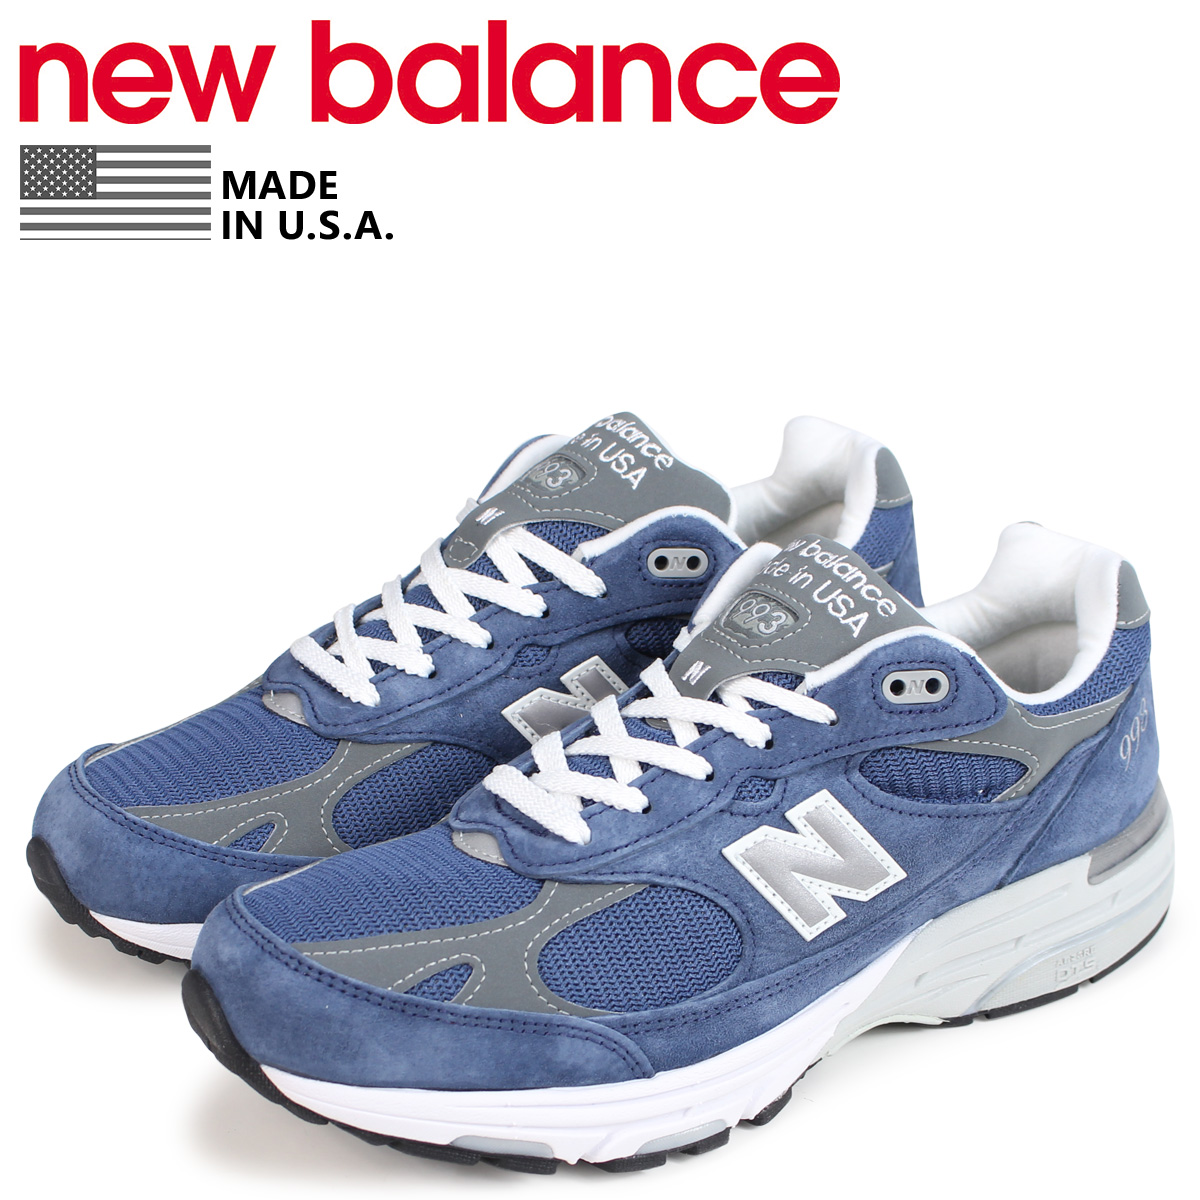 on sale 715b0 065e2 new balance 993 men's New Balance sneakers MR993VI D Wise MADE IN USA blue